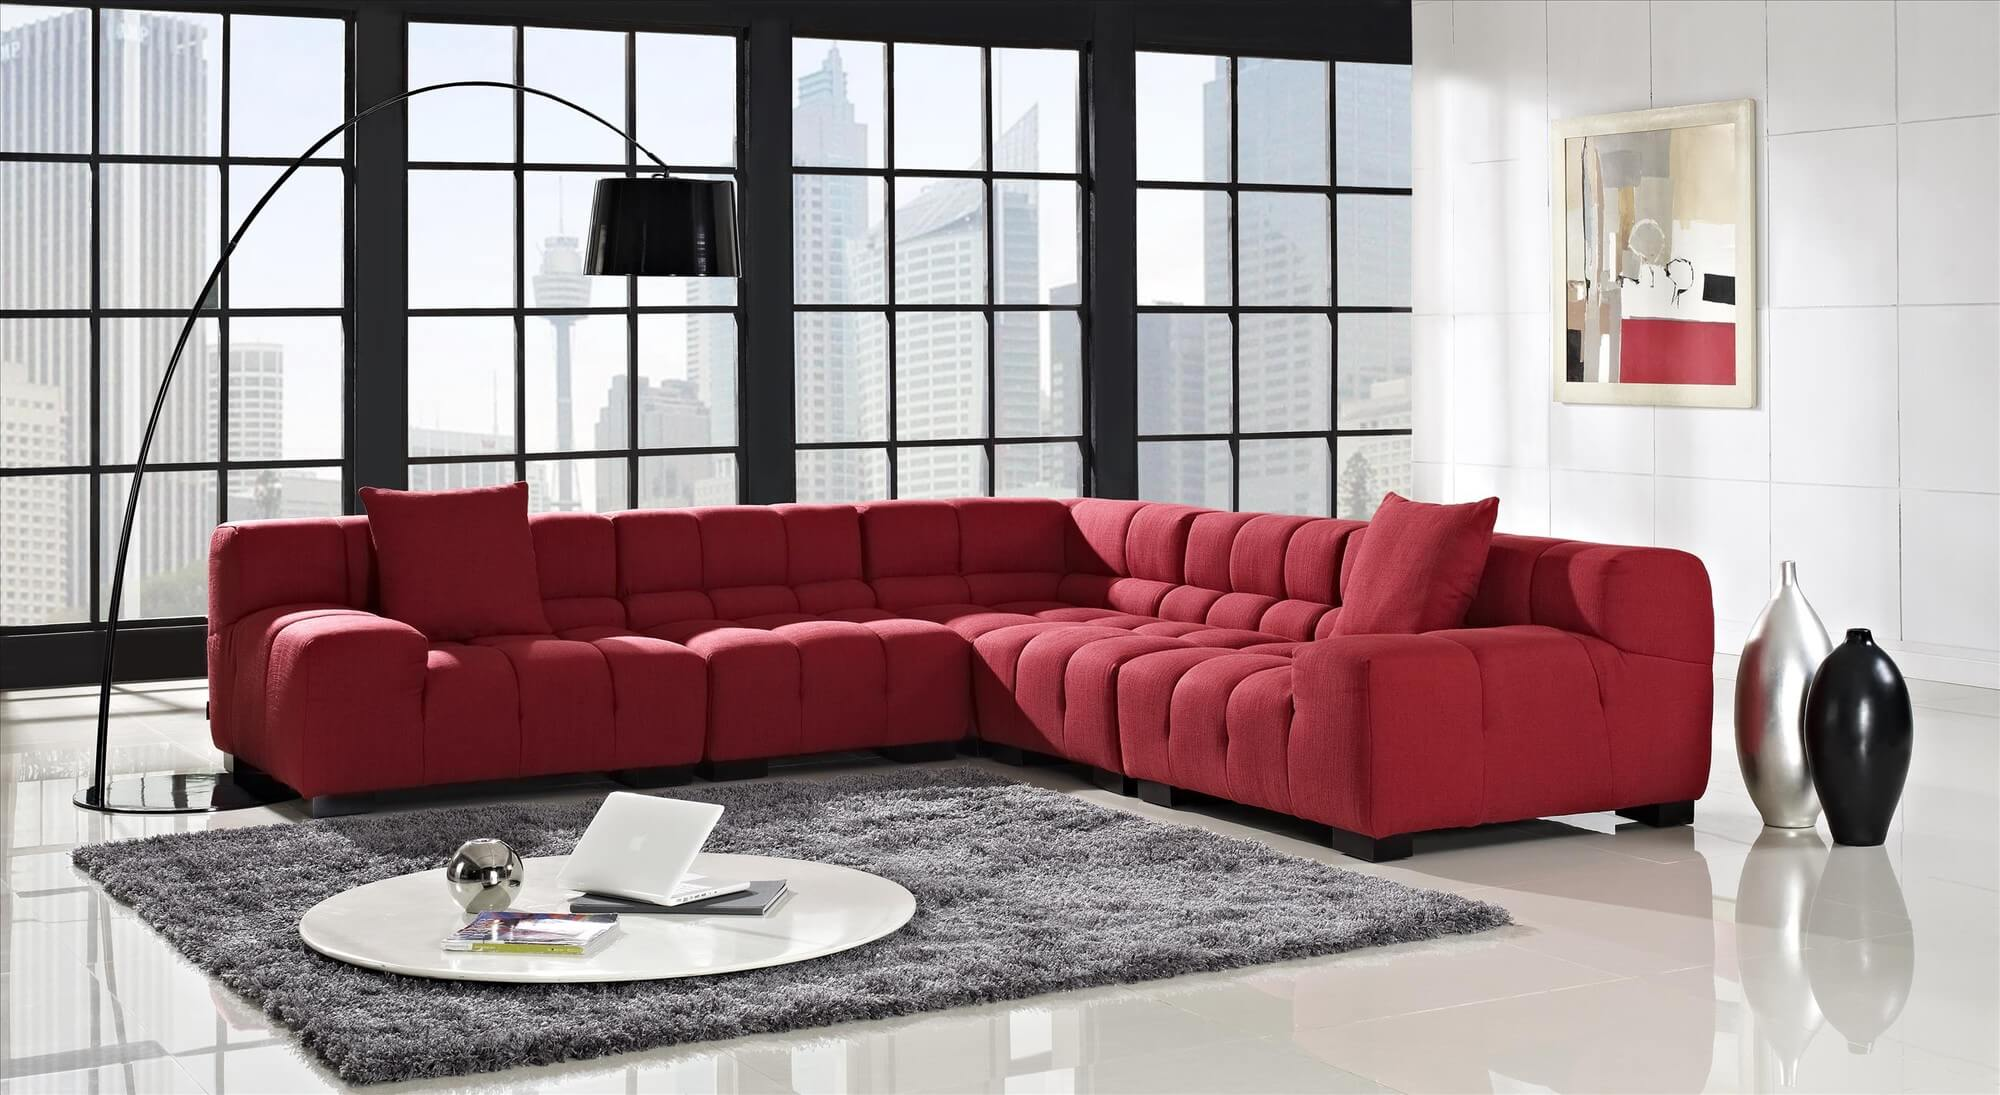 Creative furniture tufted red sectional